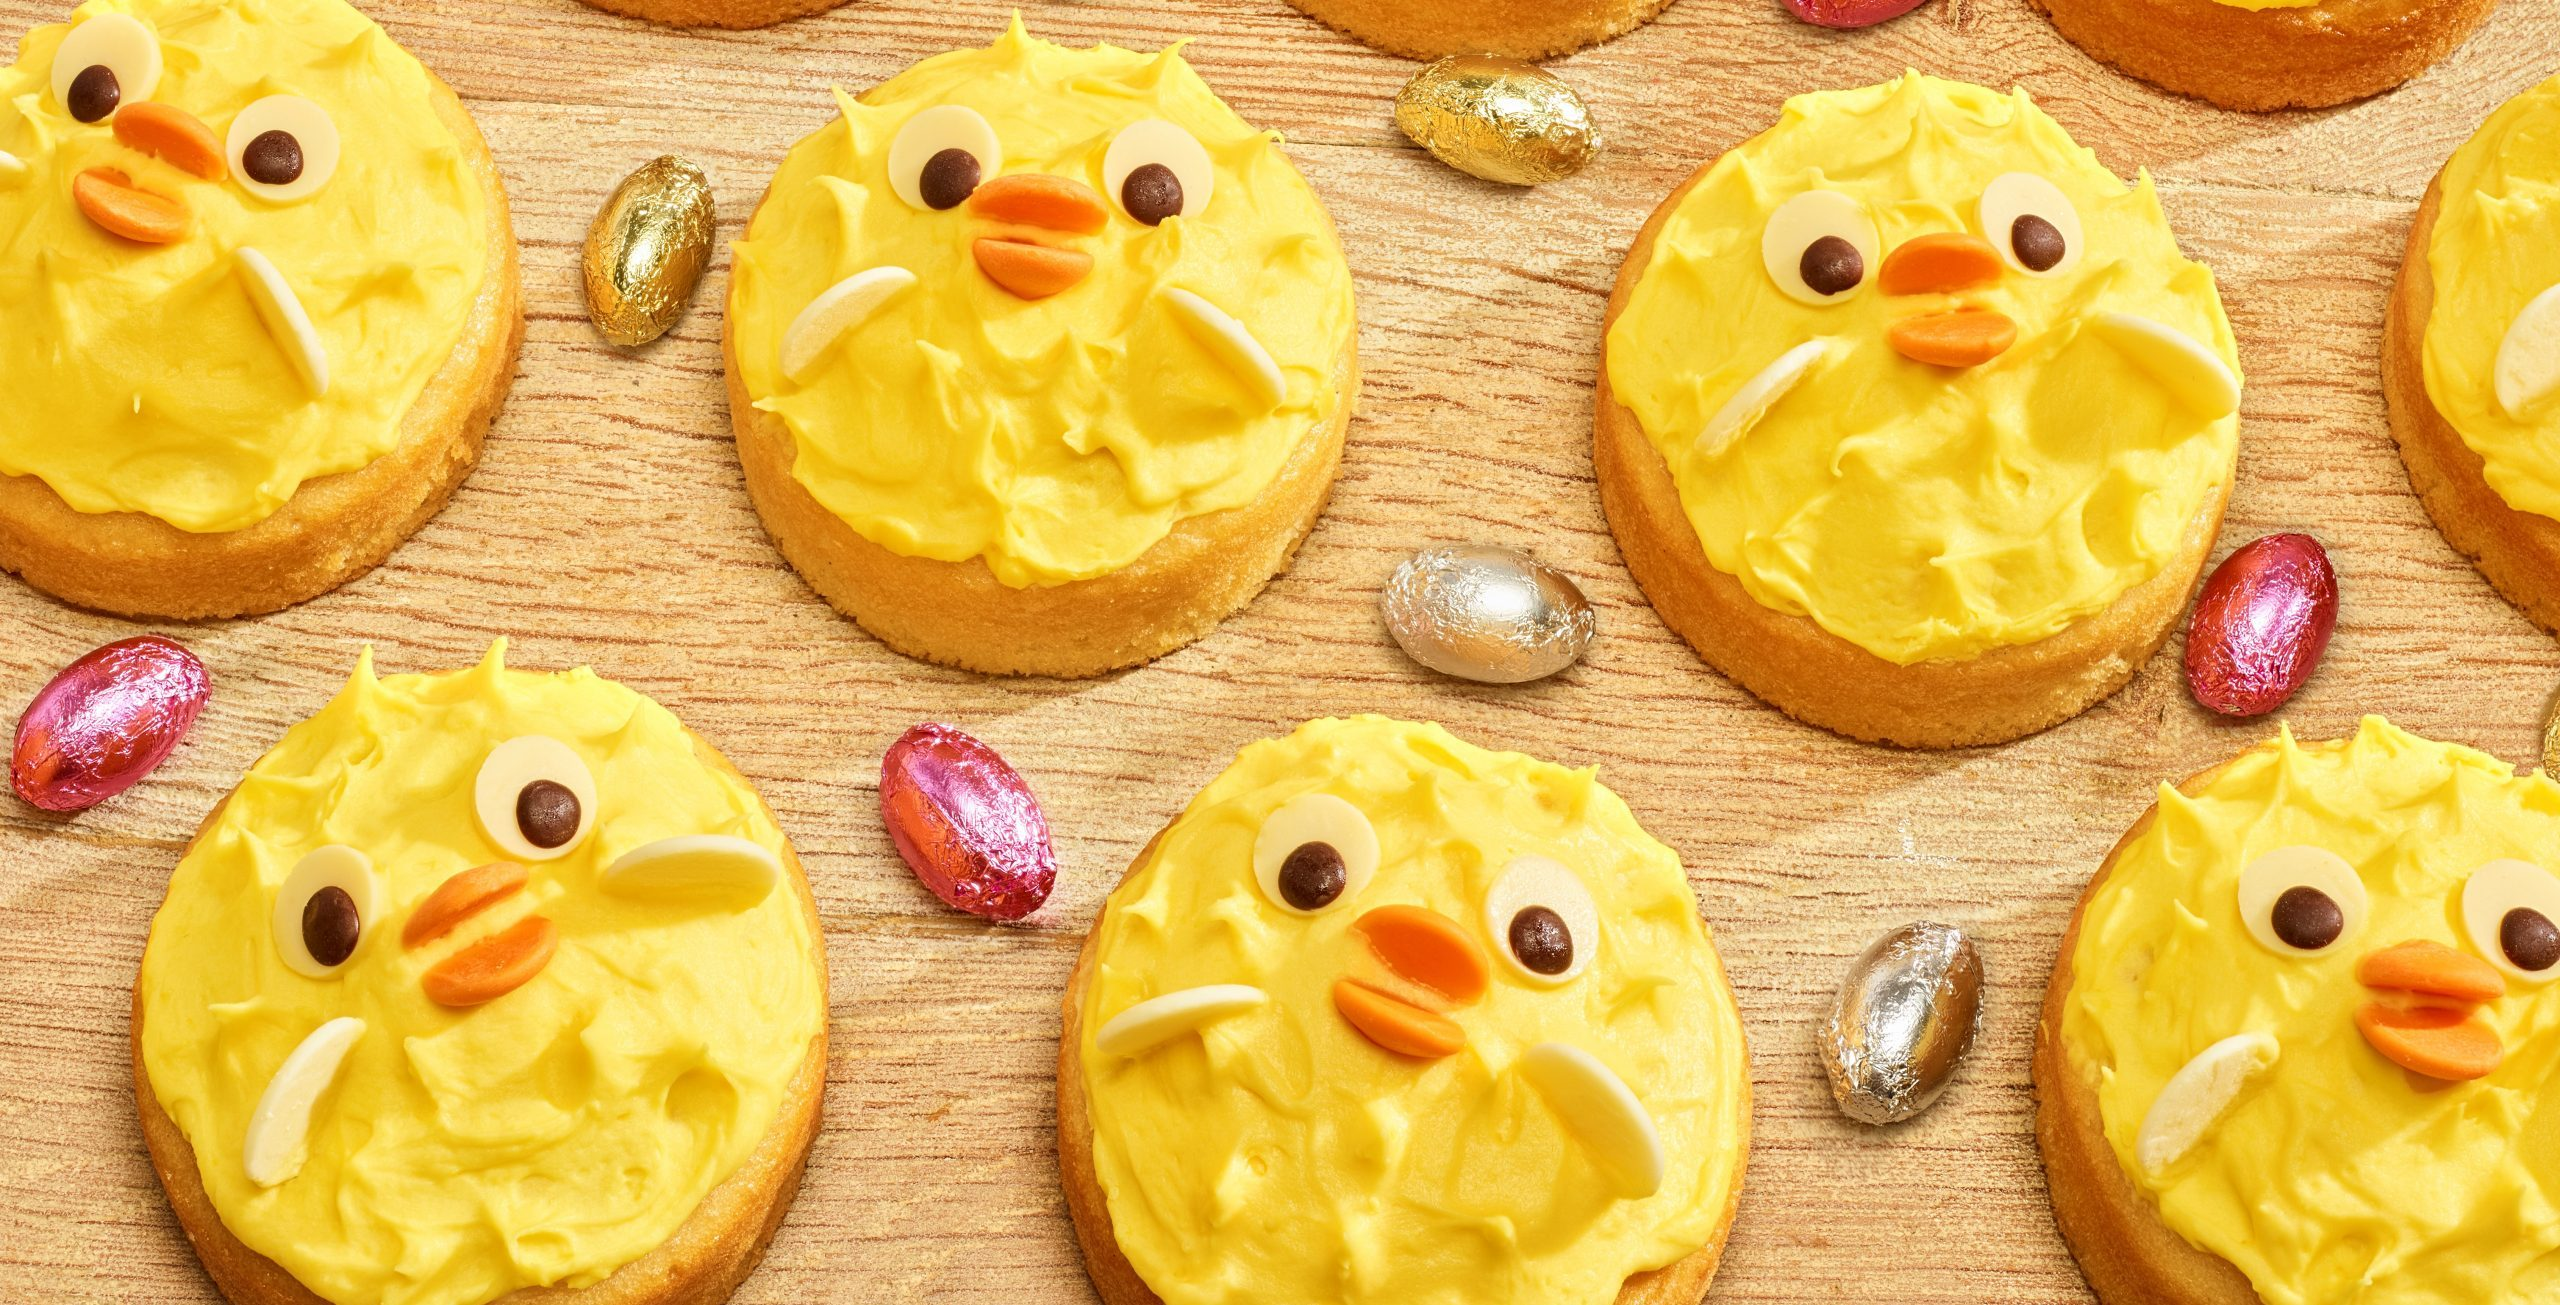 Costa launches cute Easter chick cakes topped with white chocolate as part of its spring menu